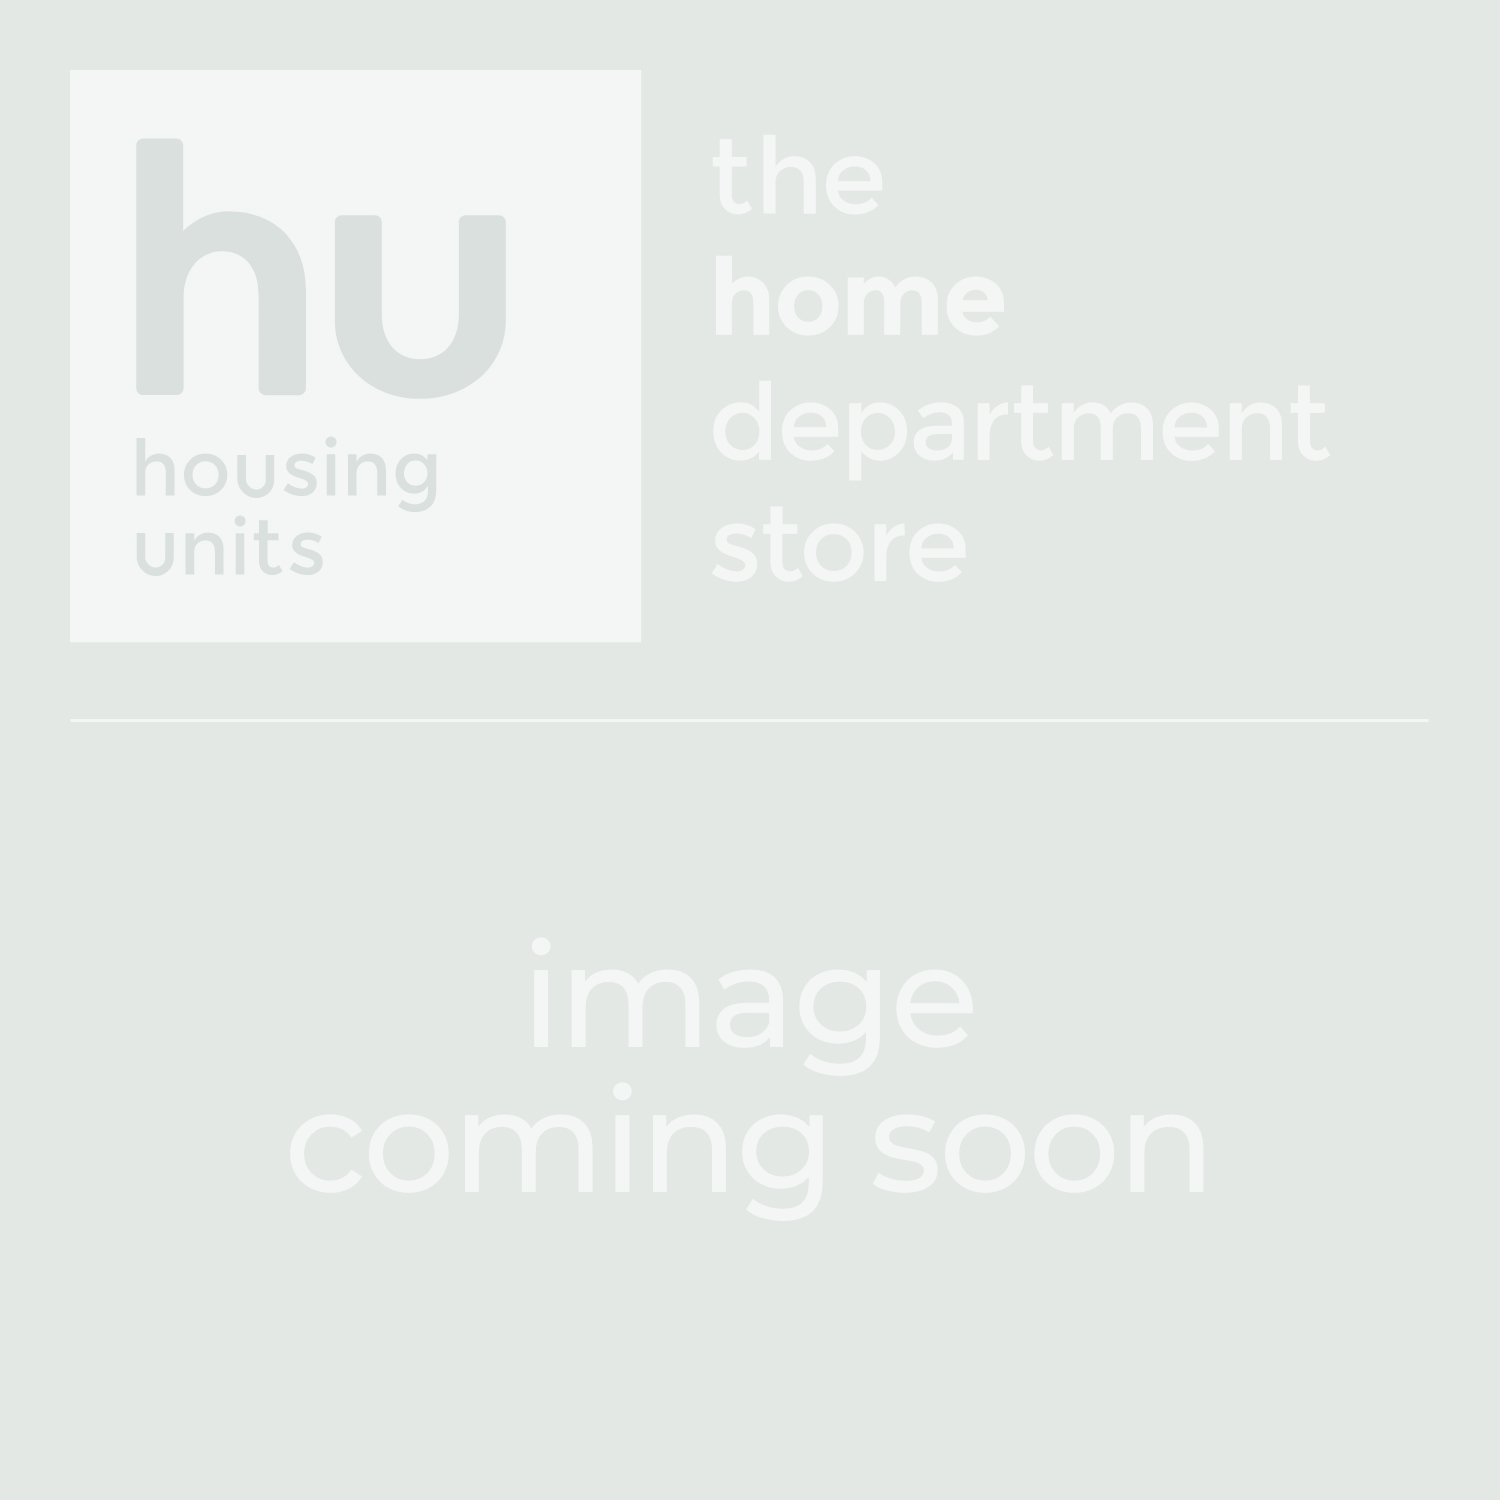 gas fires buy gas fires online housing units